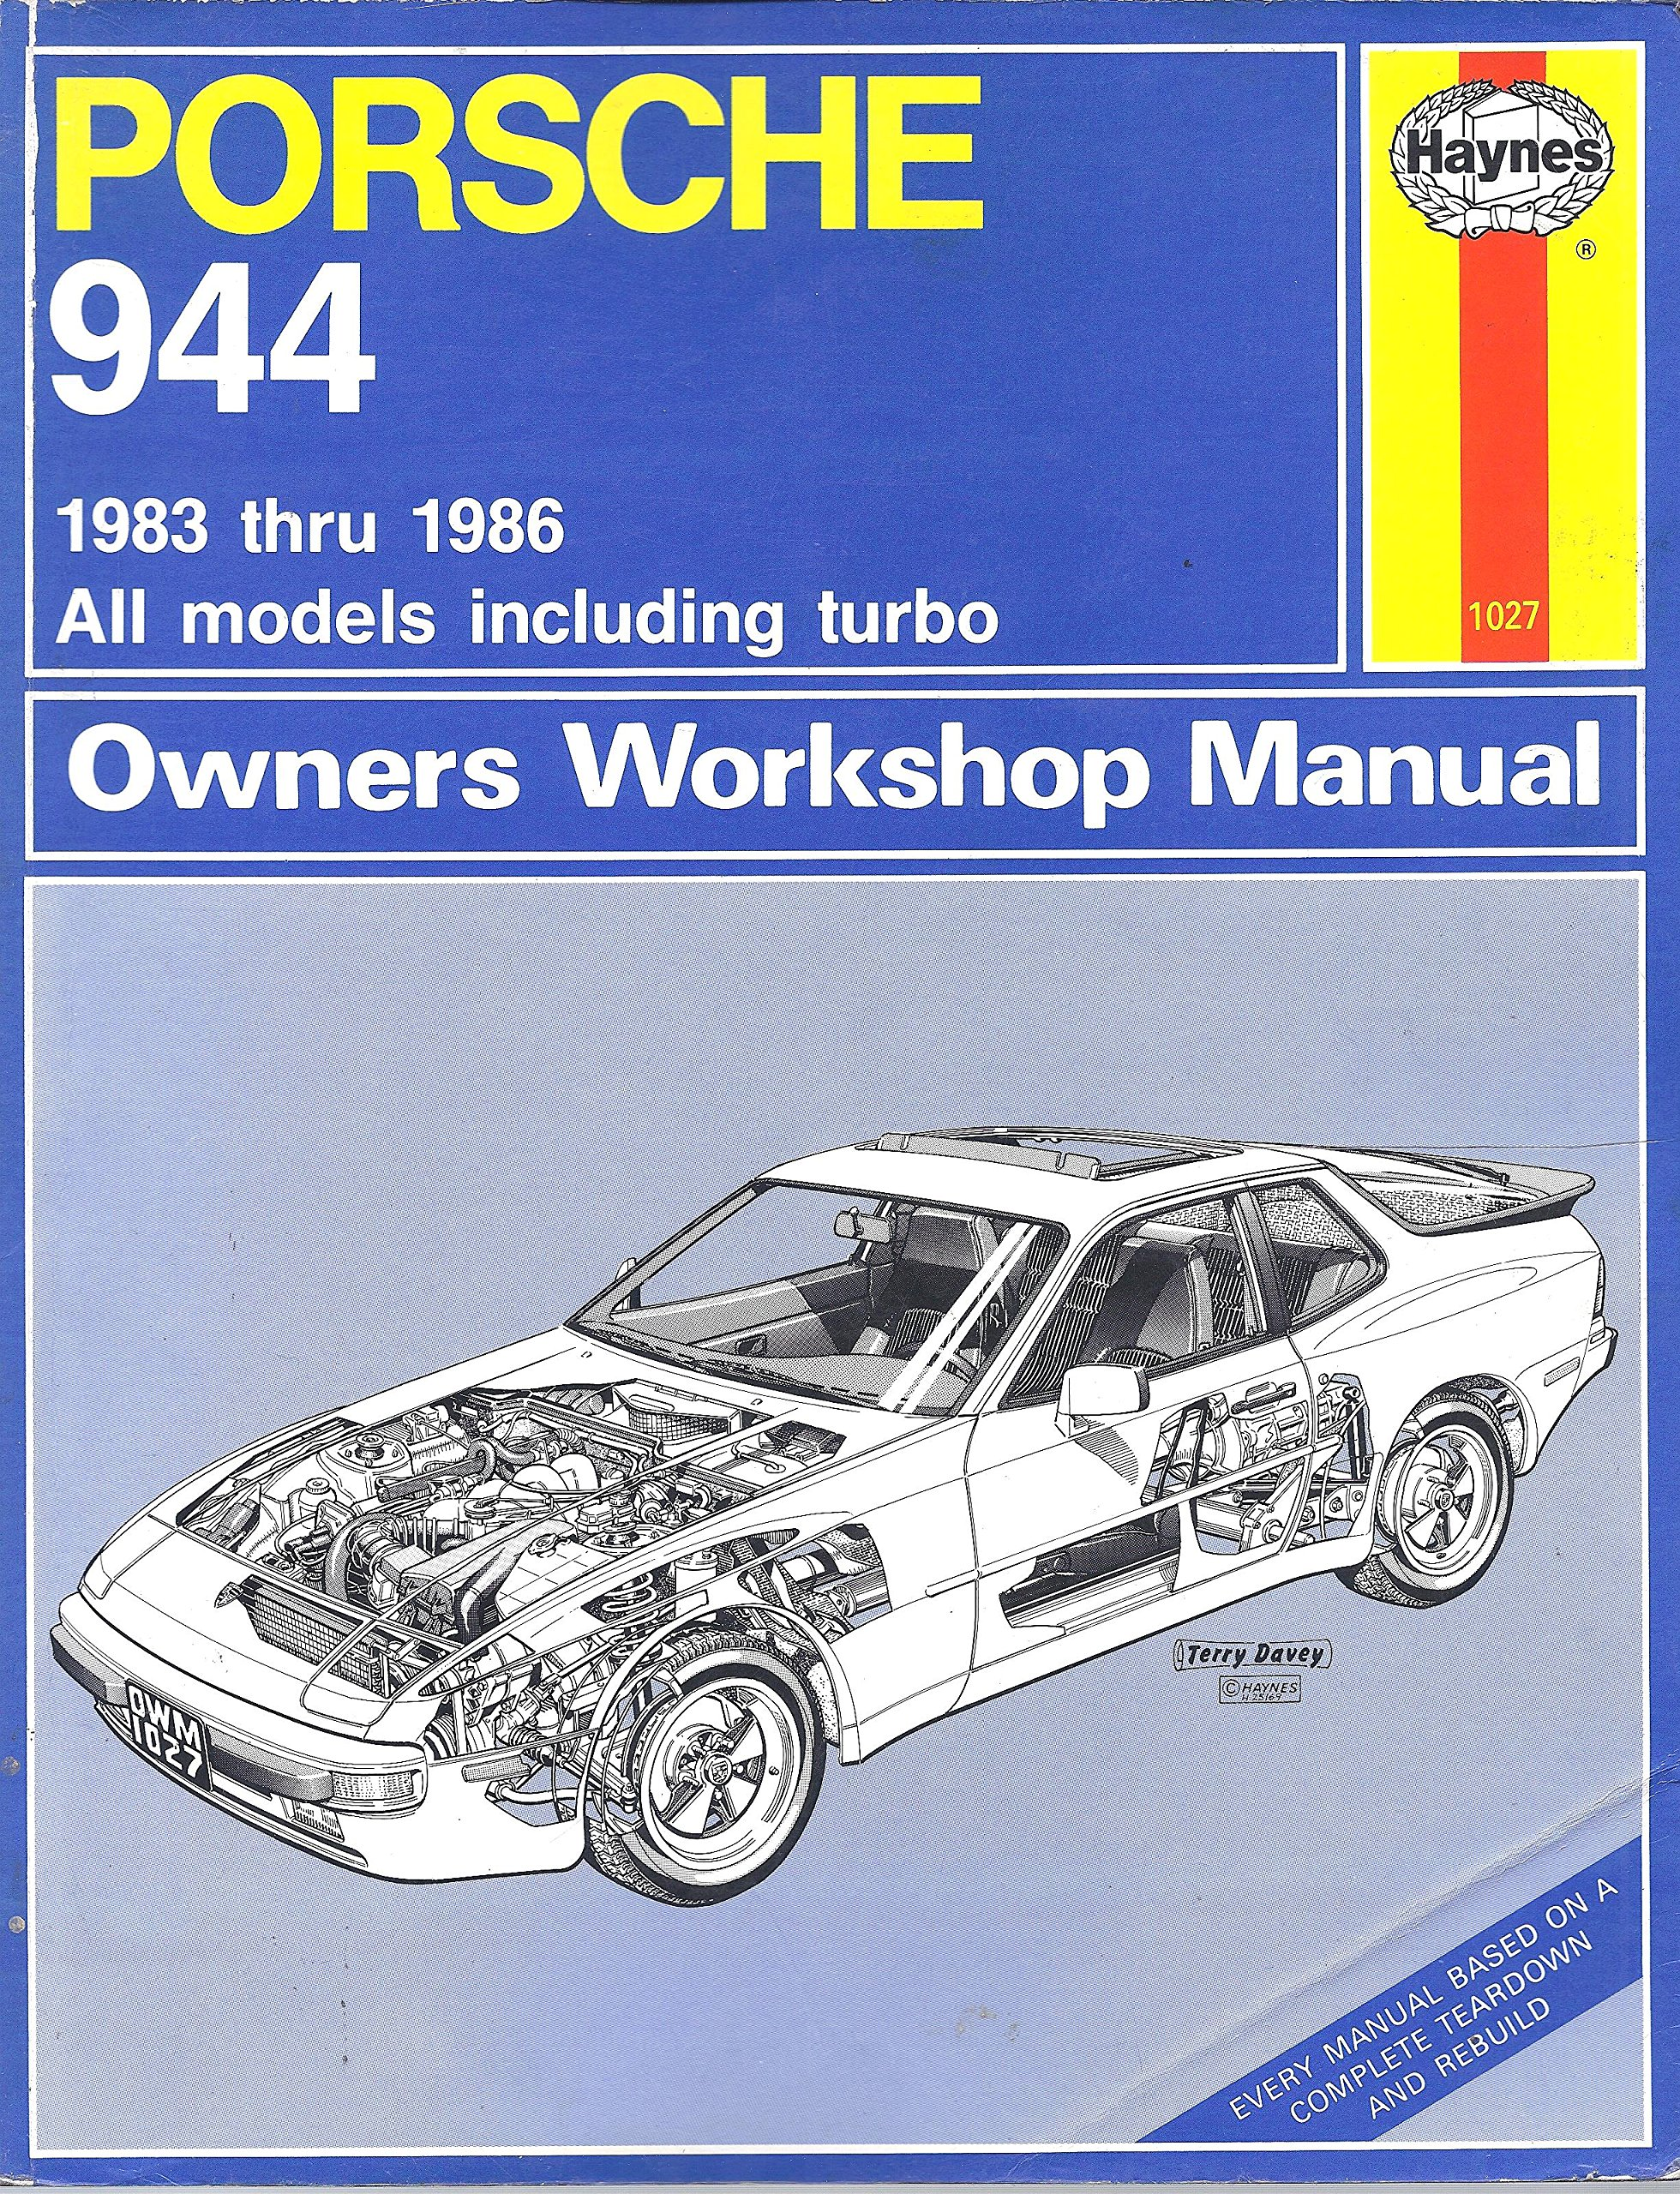 Porsche 944 Owners Workshop Manual: All Porsche 944 Models, Including Turbo  1983 Through 1986: Larry Warren, Chaun Muir, John Harold Haynes:  9781850100270: ...